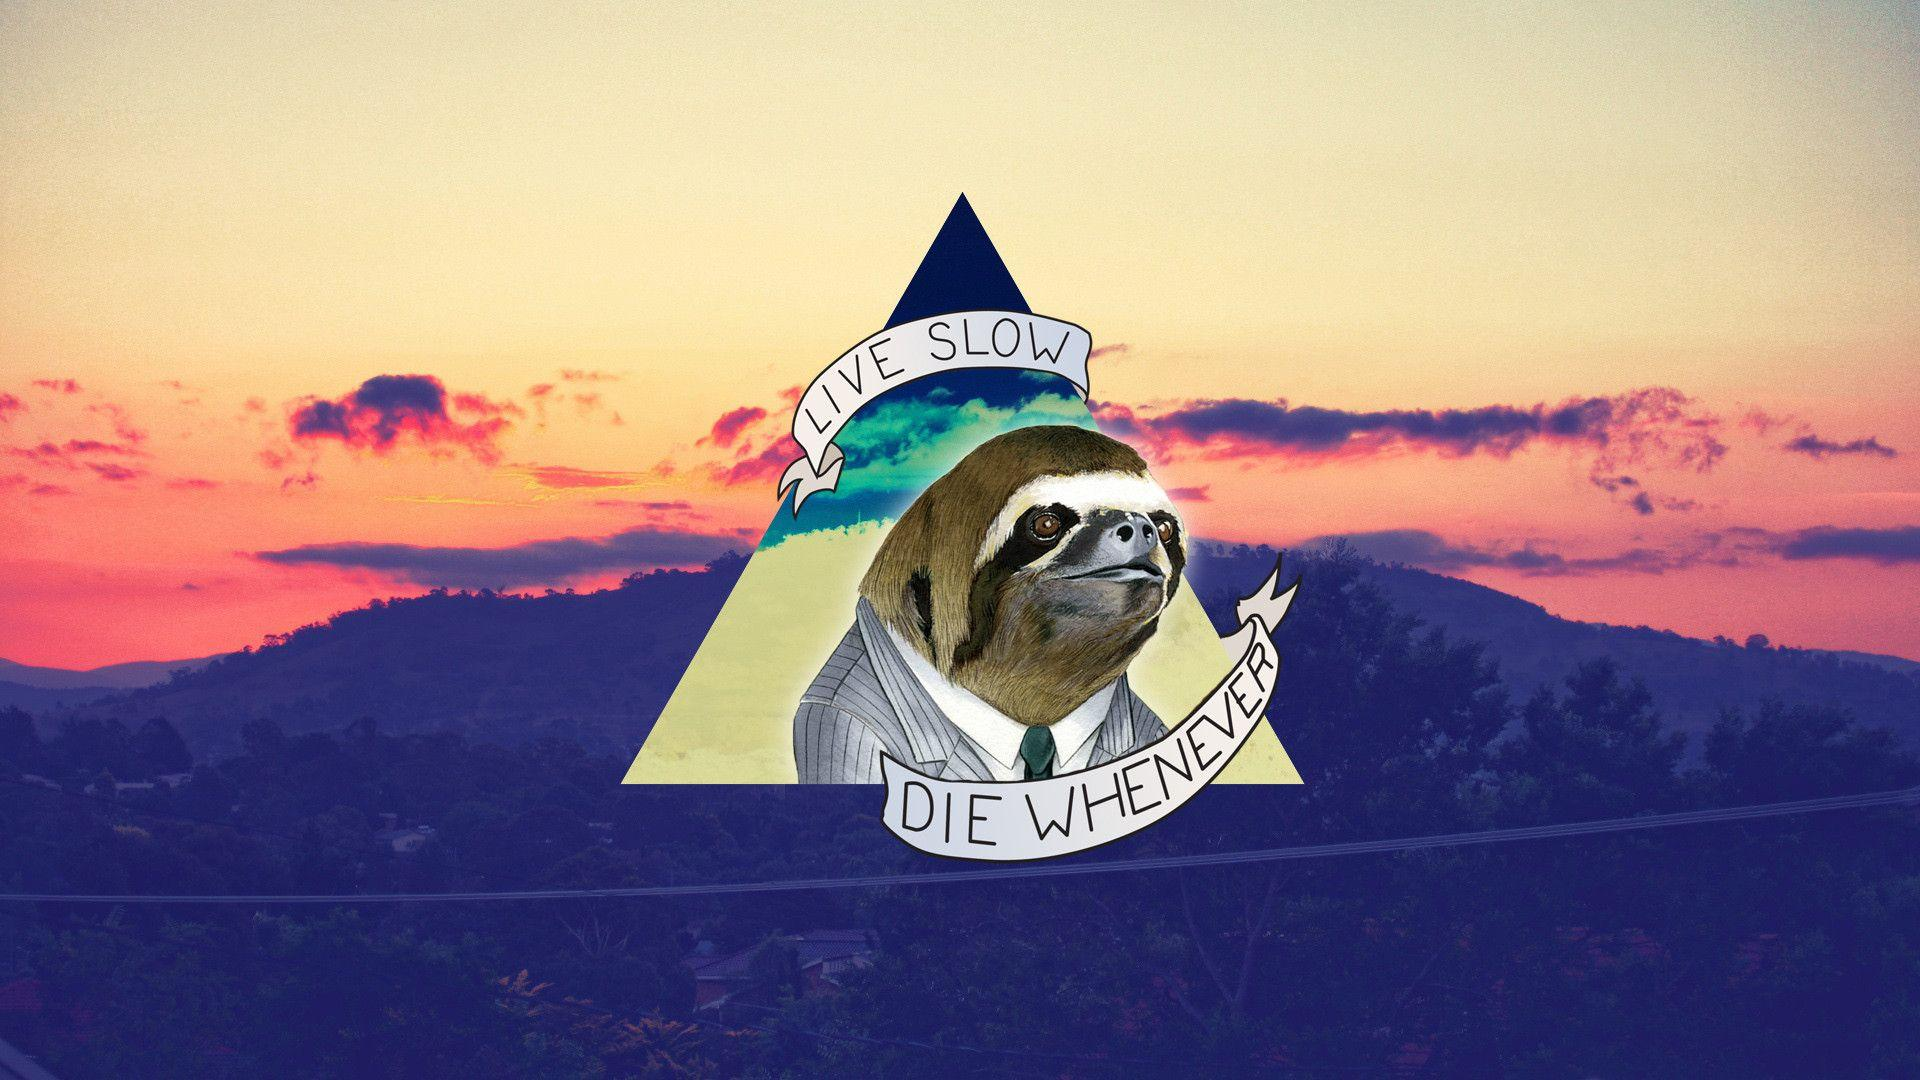 Sloth wallpapers is best wallpapers : sloths